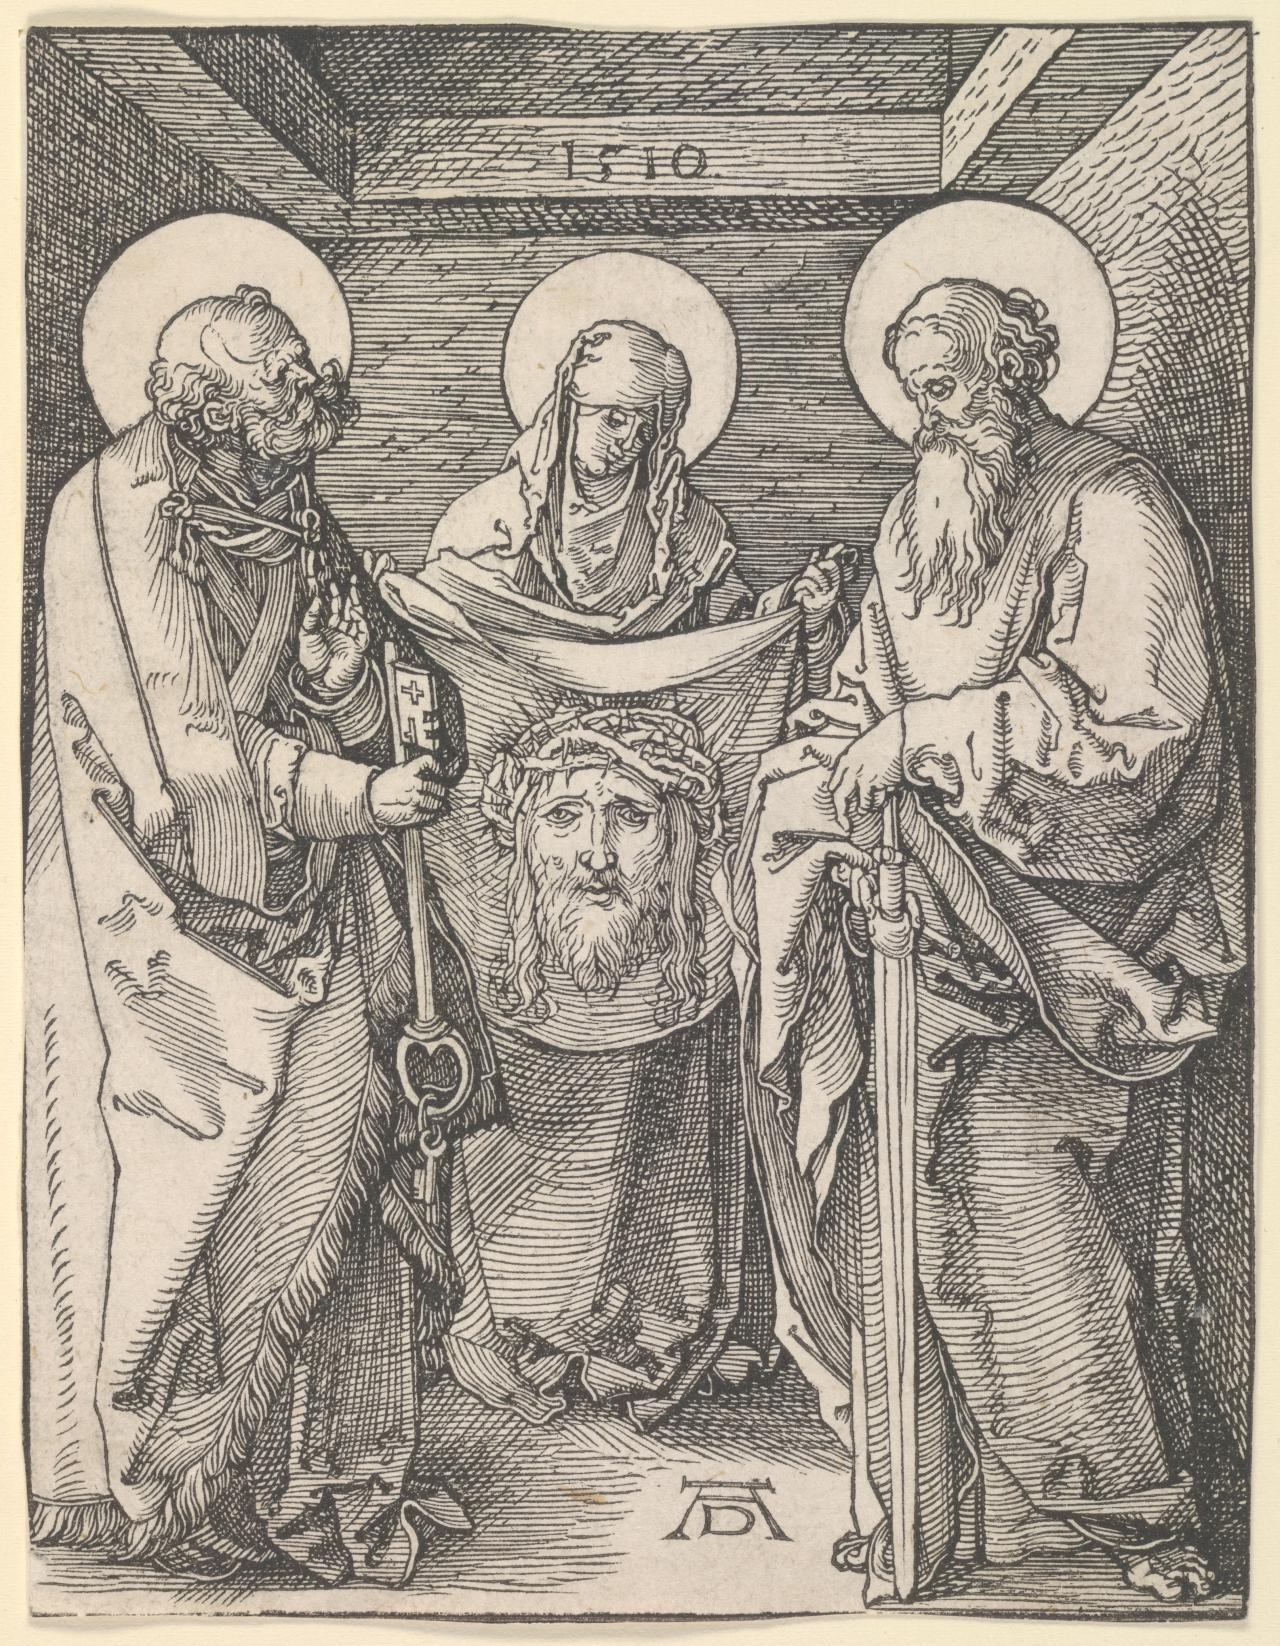 Saints Veronica, Peter and Paul